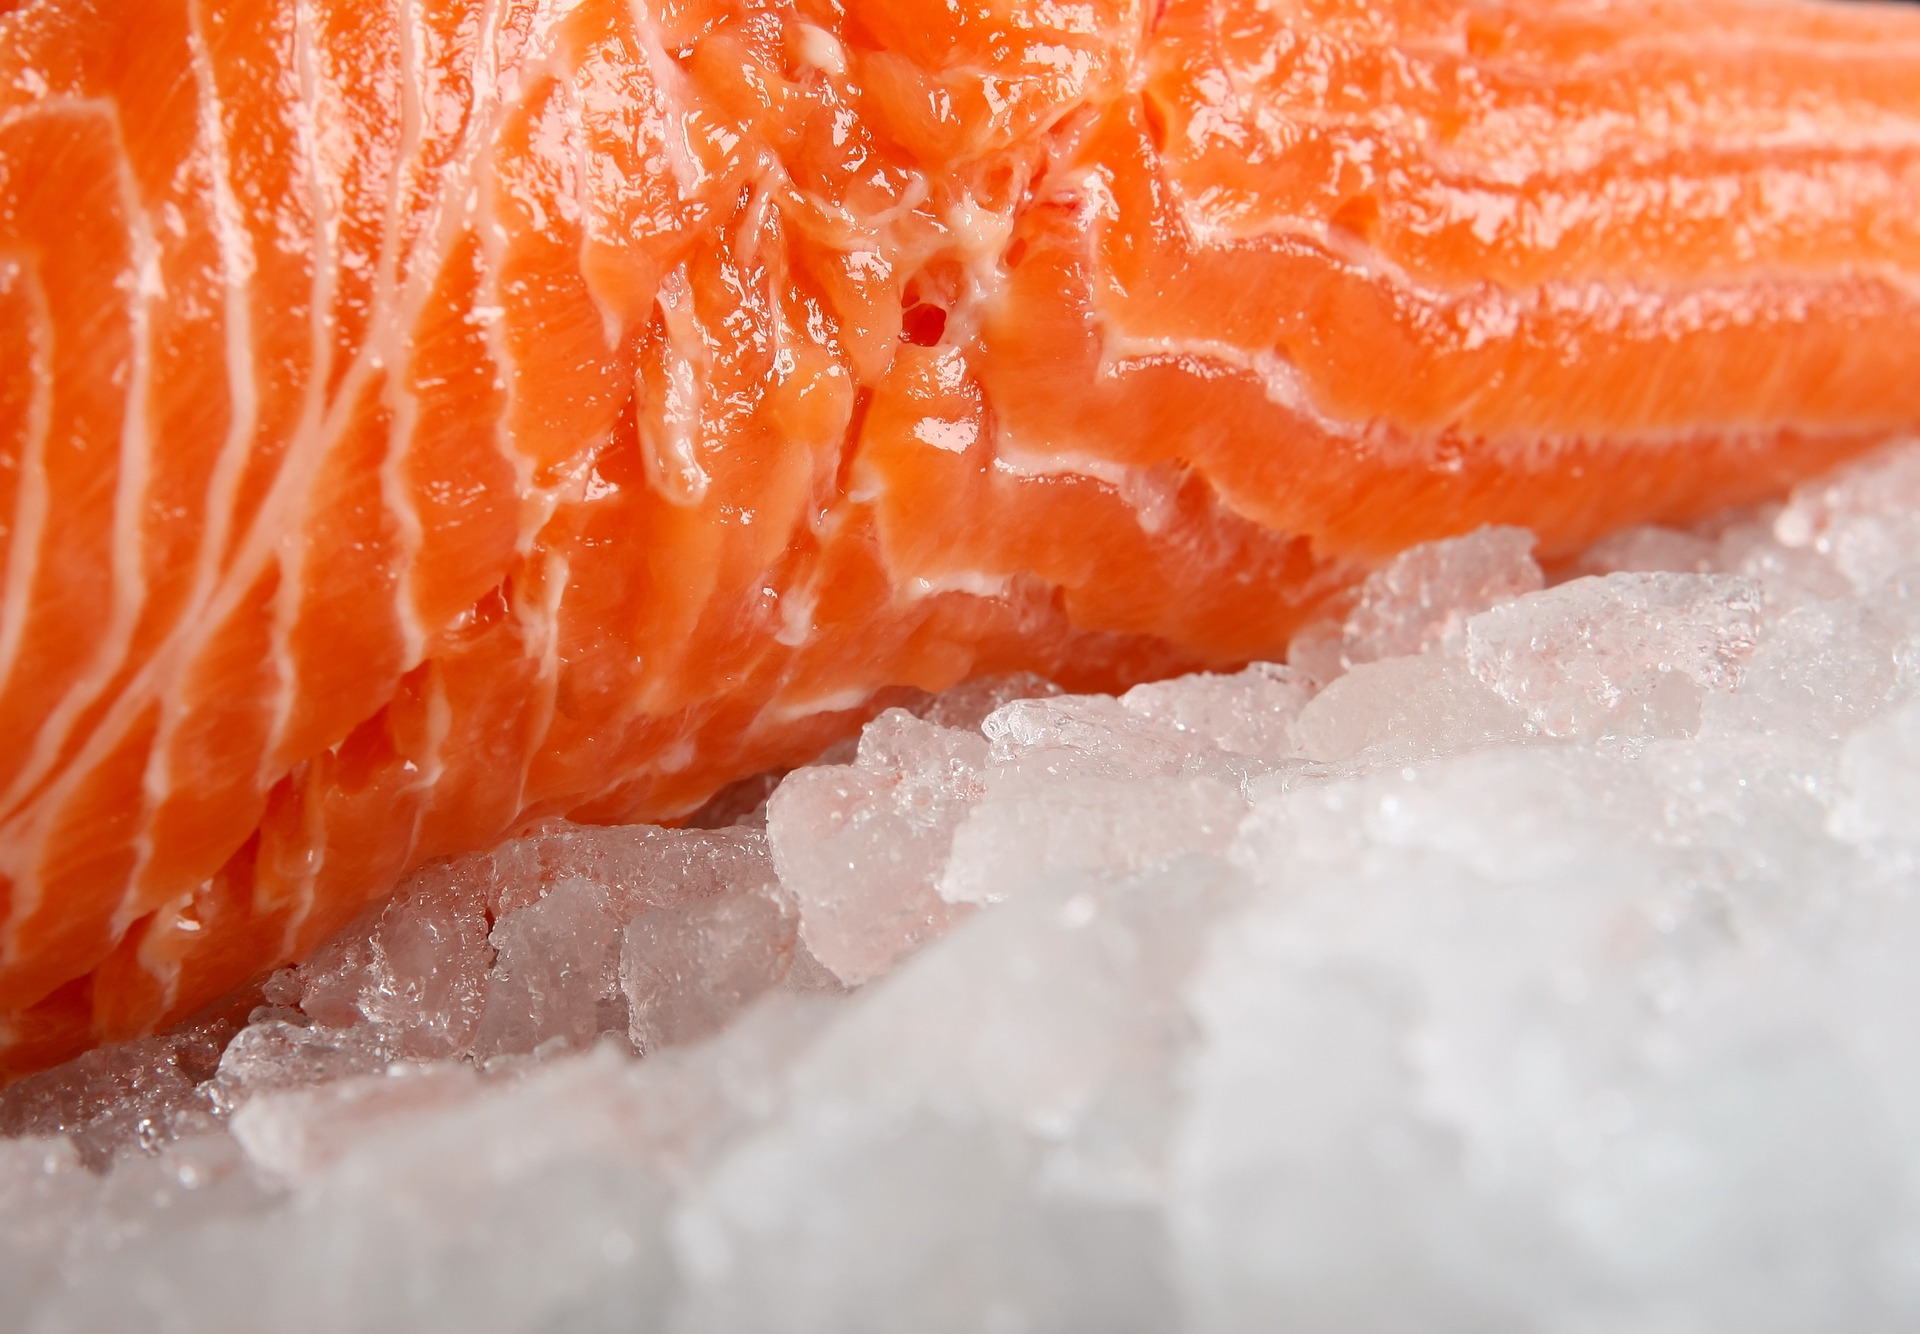 A zoomed in section of uncooked salmon laying on a bed of ice. - TAB Bank